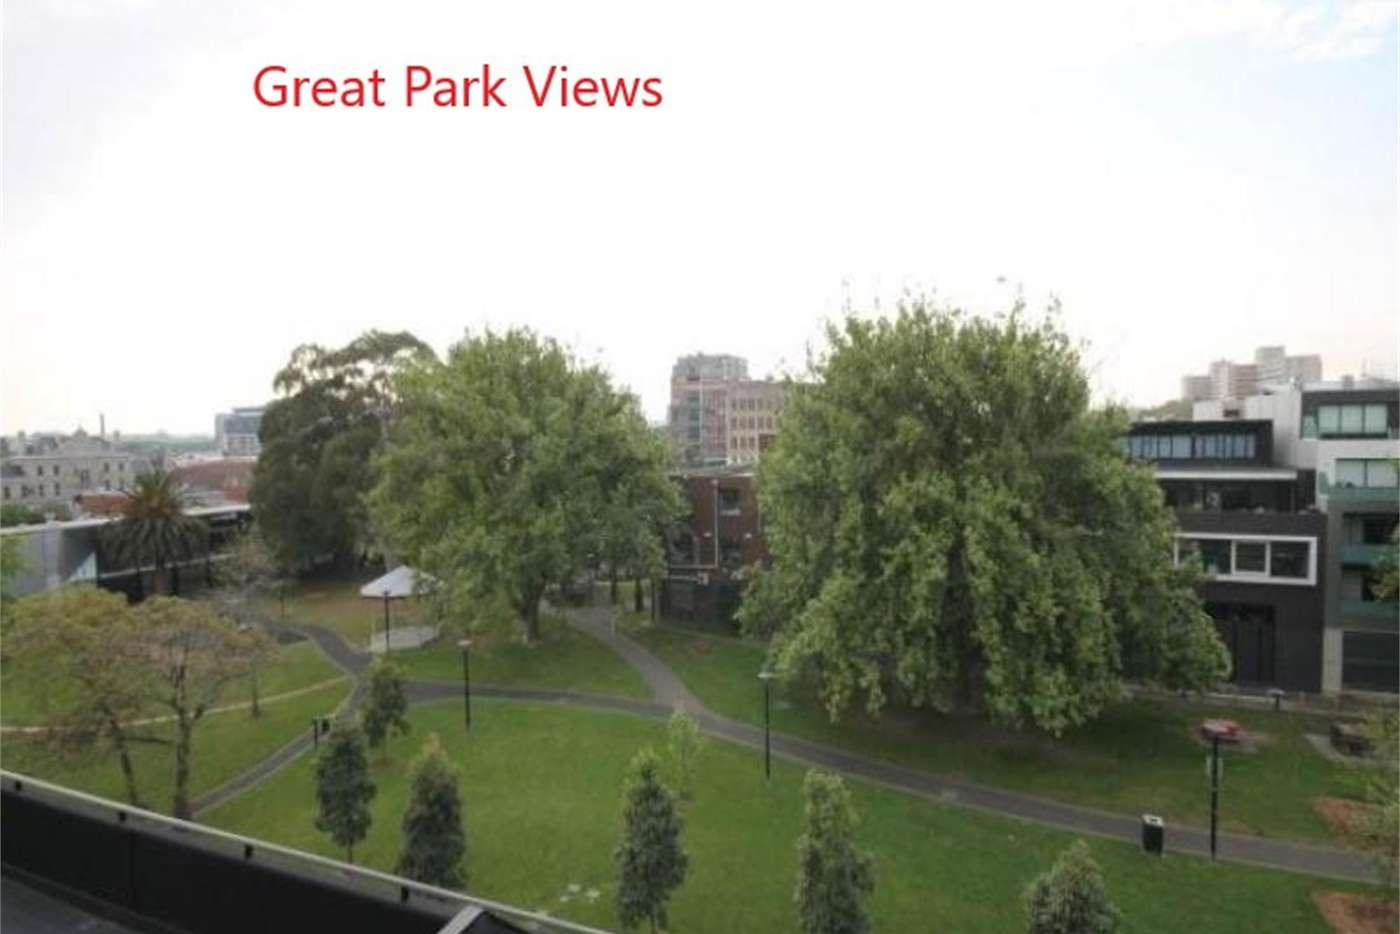 Main view of Homely apartment listing, 407/13-15 Grattan Street, Prahran VIC 3181